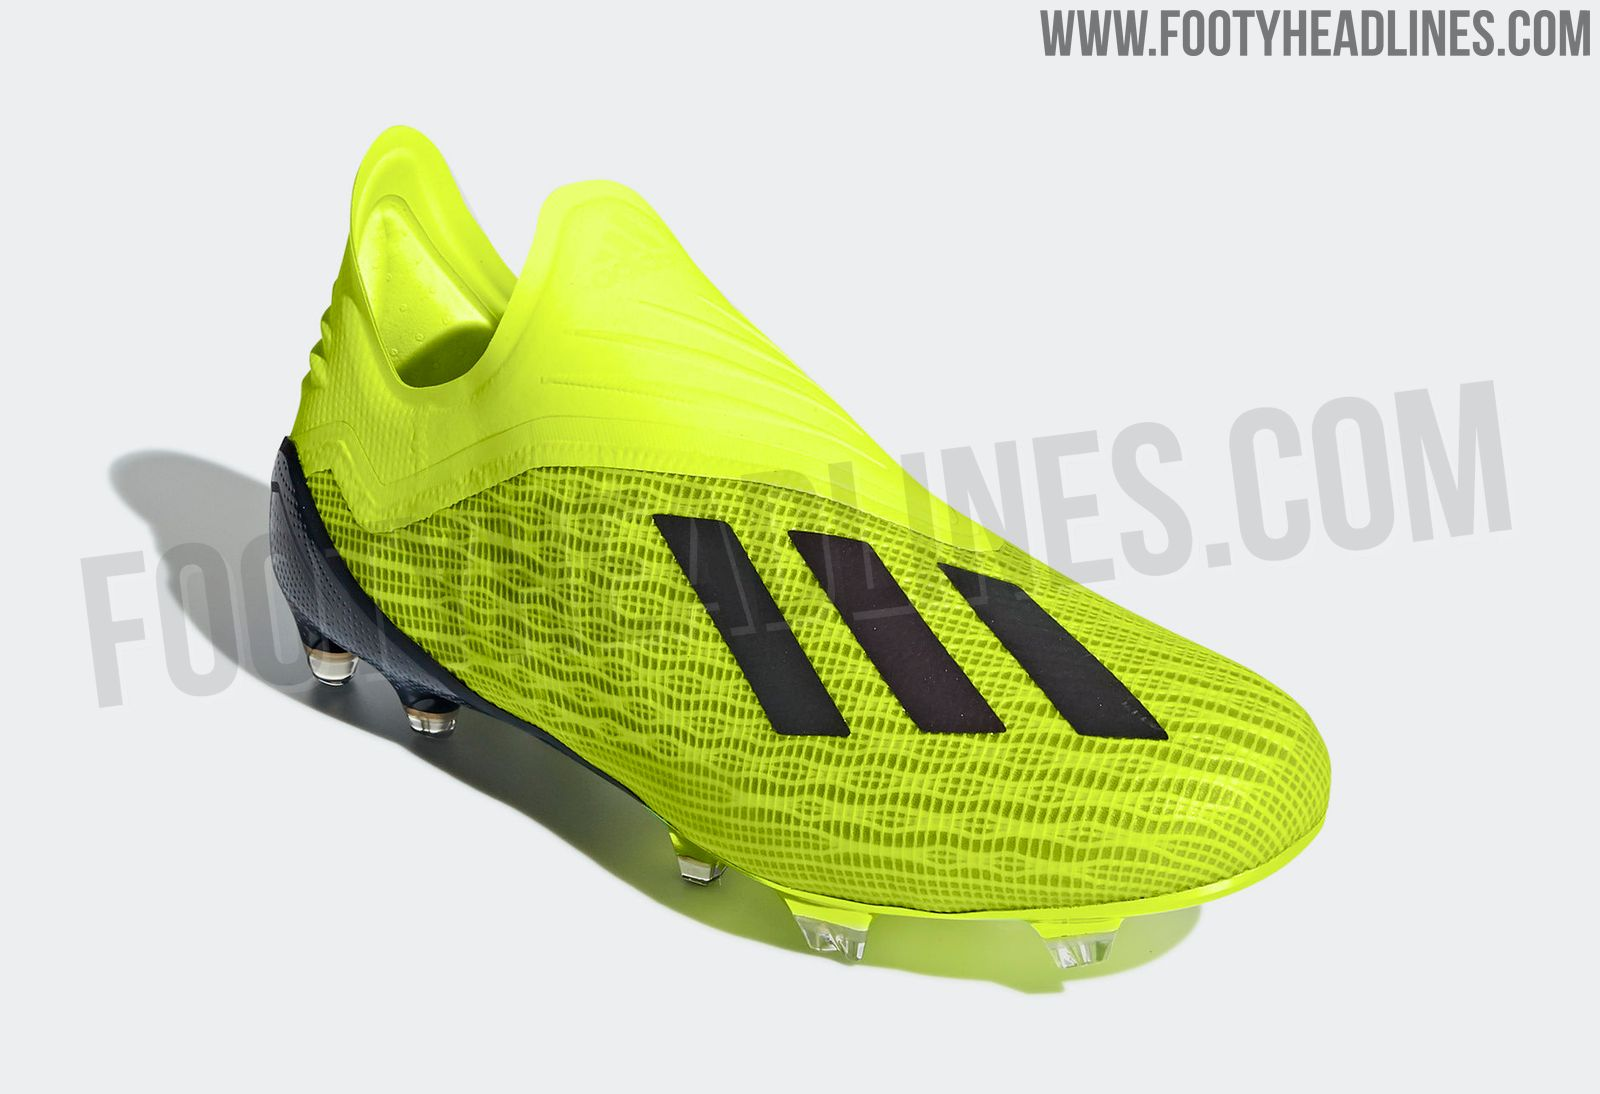 promo code d394f 6be1e team mode adidas x 18 boots leaked footy headlines